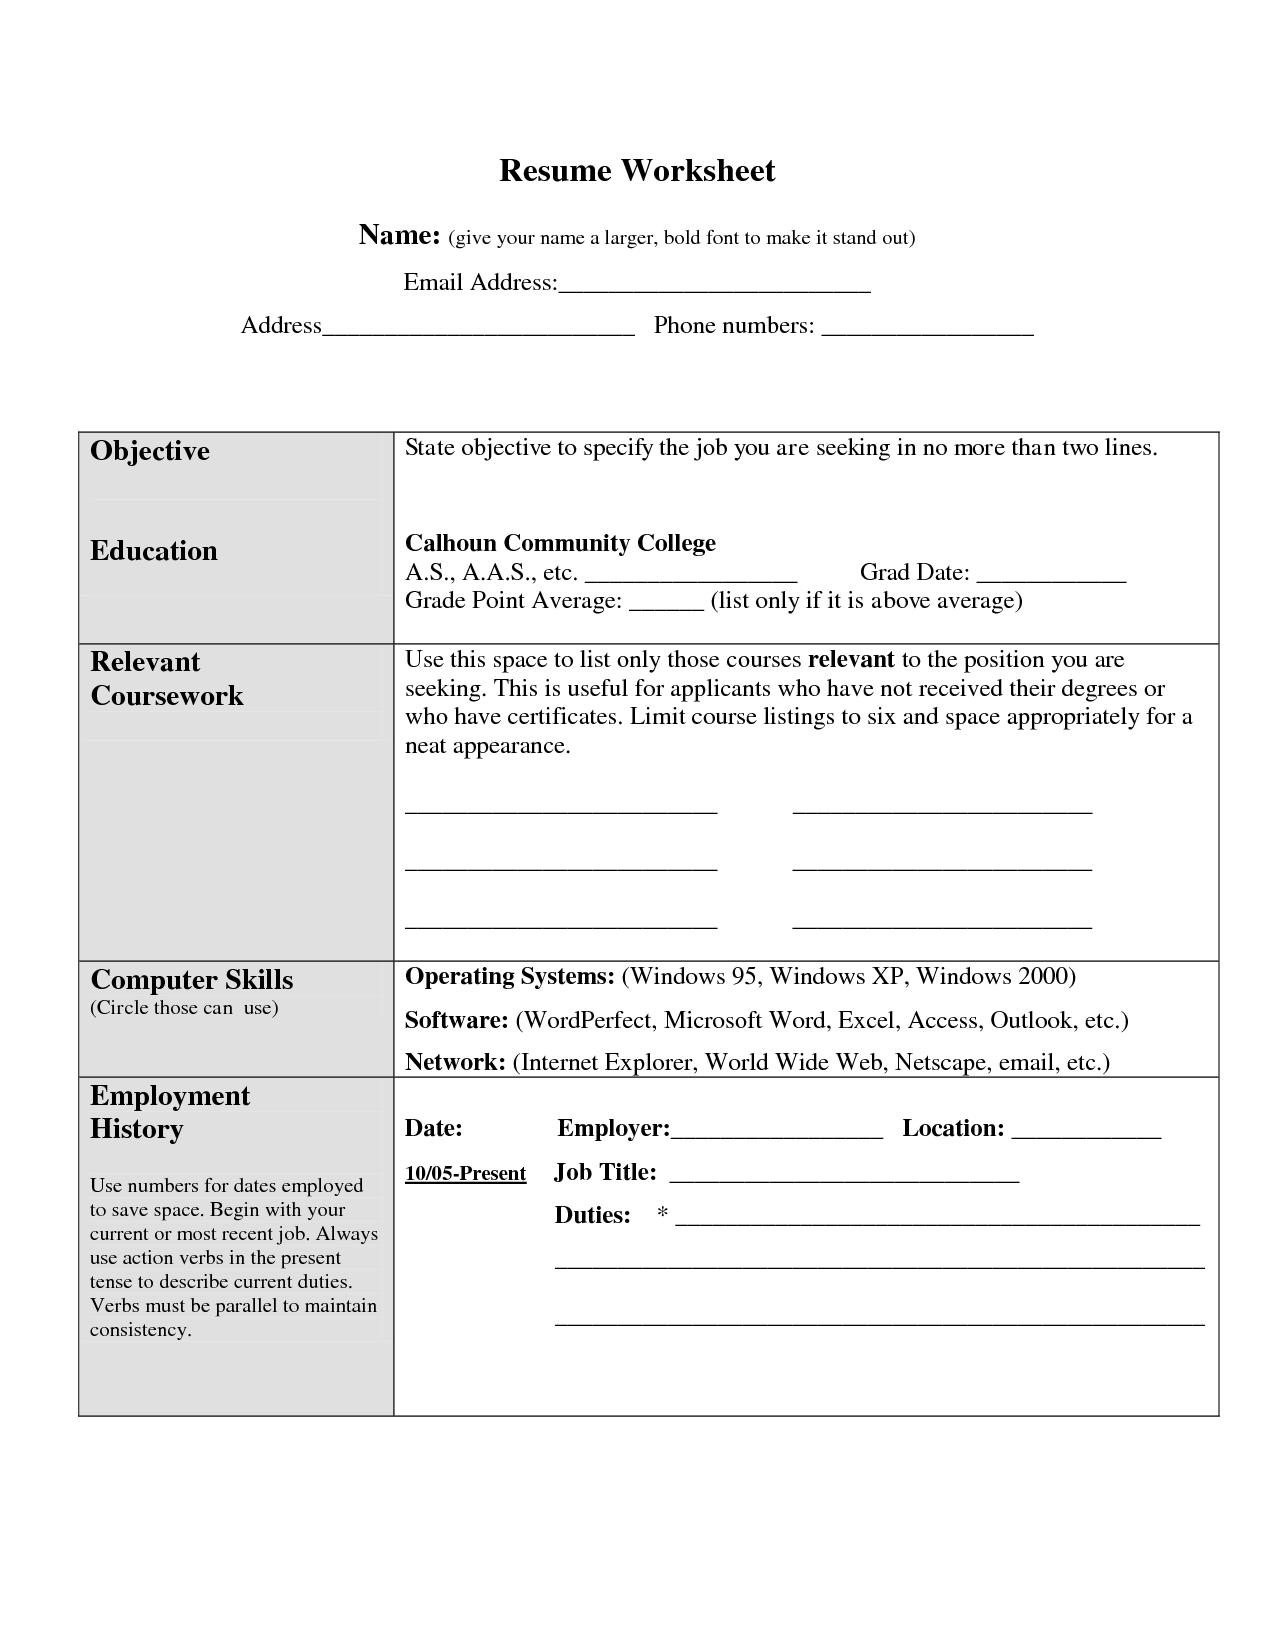 Worksheet For High School Thesis